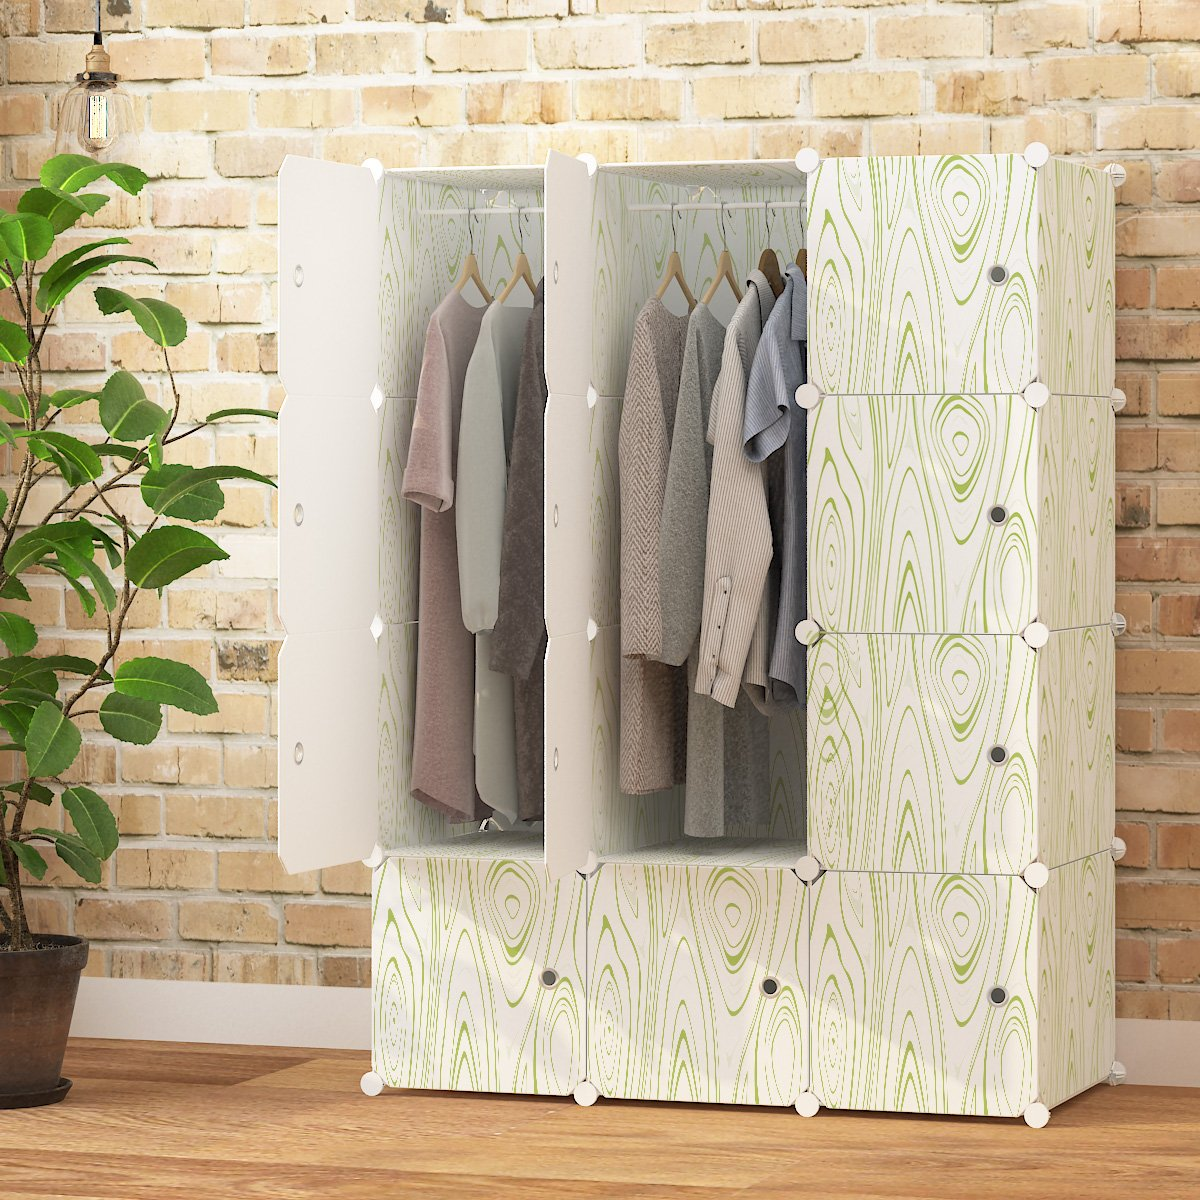 KOUSI Portable Closet Clothes Wardrobe Bedroom Armoire Storage Organizer with Doors, Capacious & Sturdy,White with Wood Grain Pattern, 6 Cubes&2 Hangers